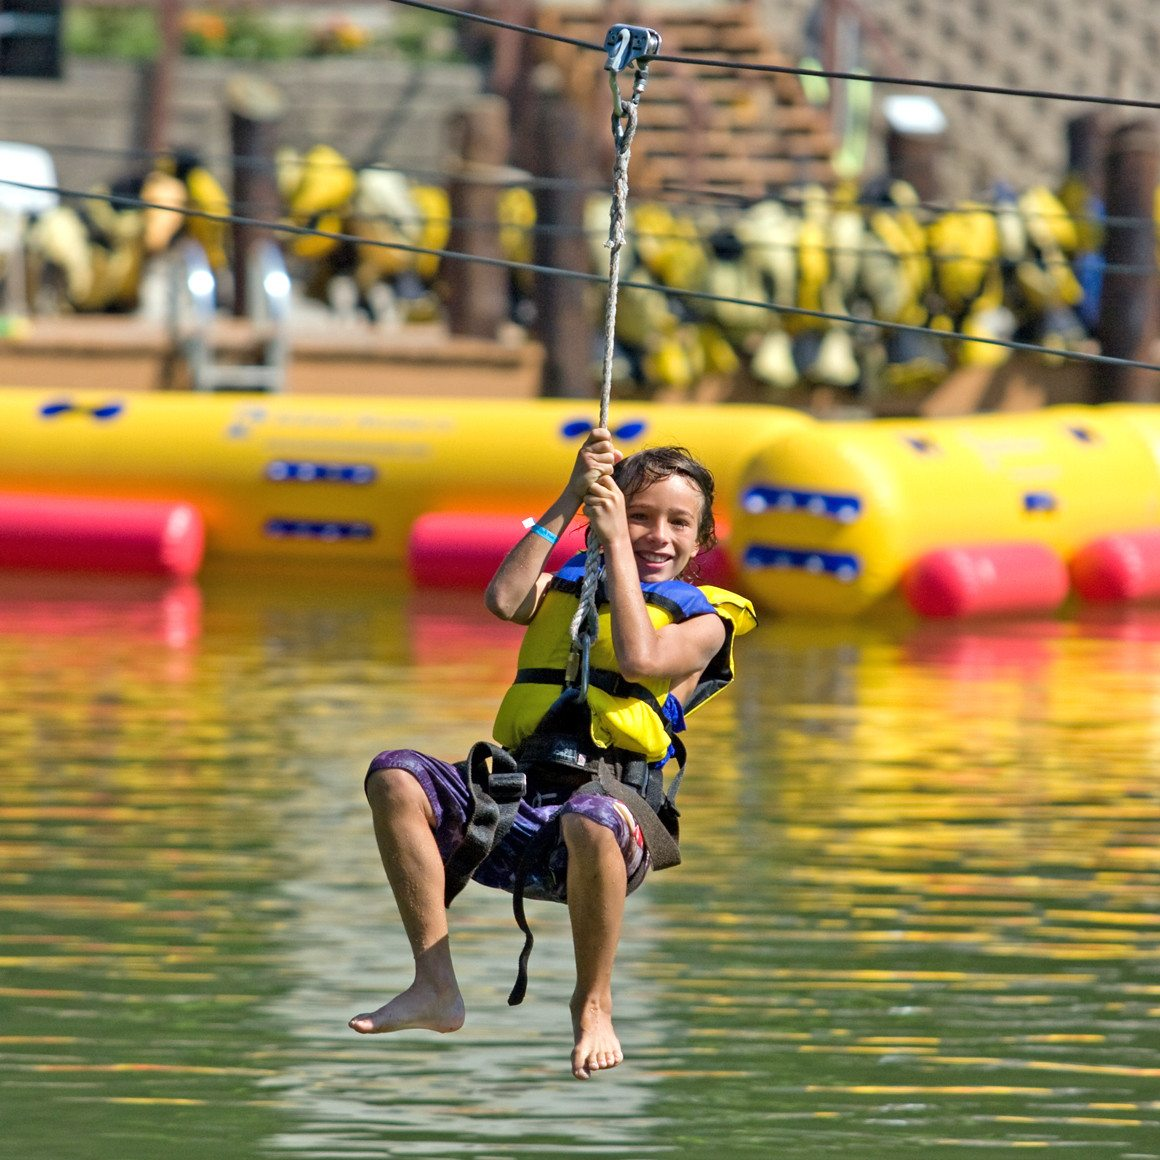 A boy smiles as he ziplines towards the water at Wonderland Waterpark